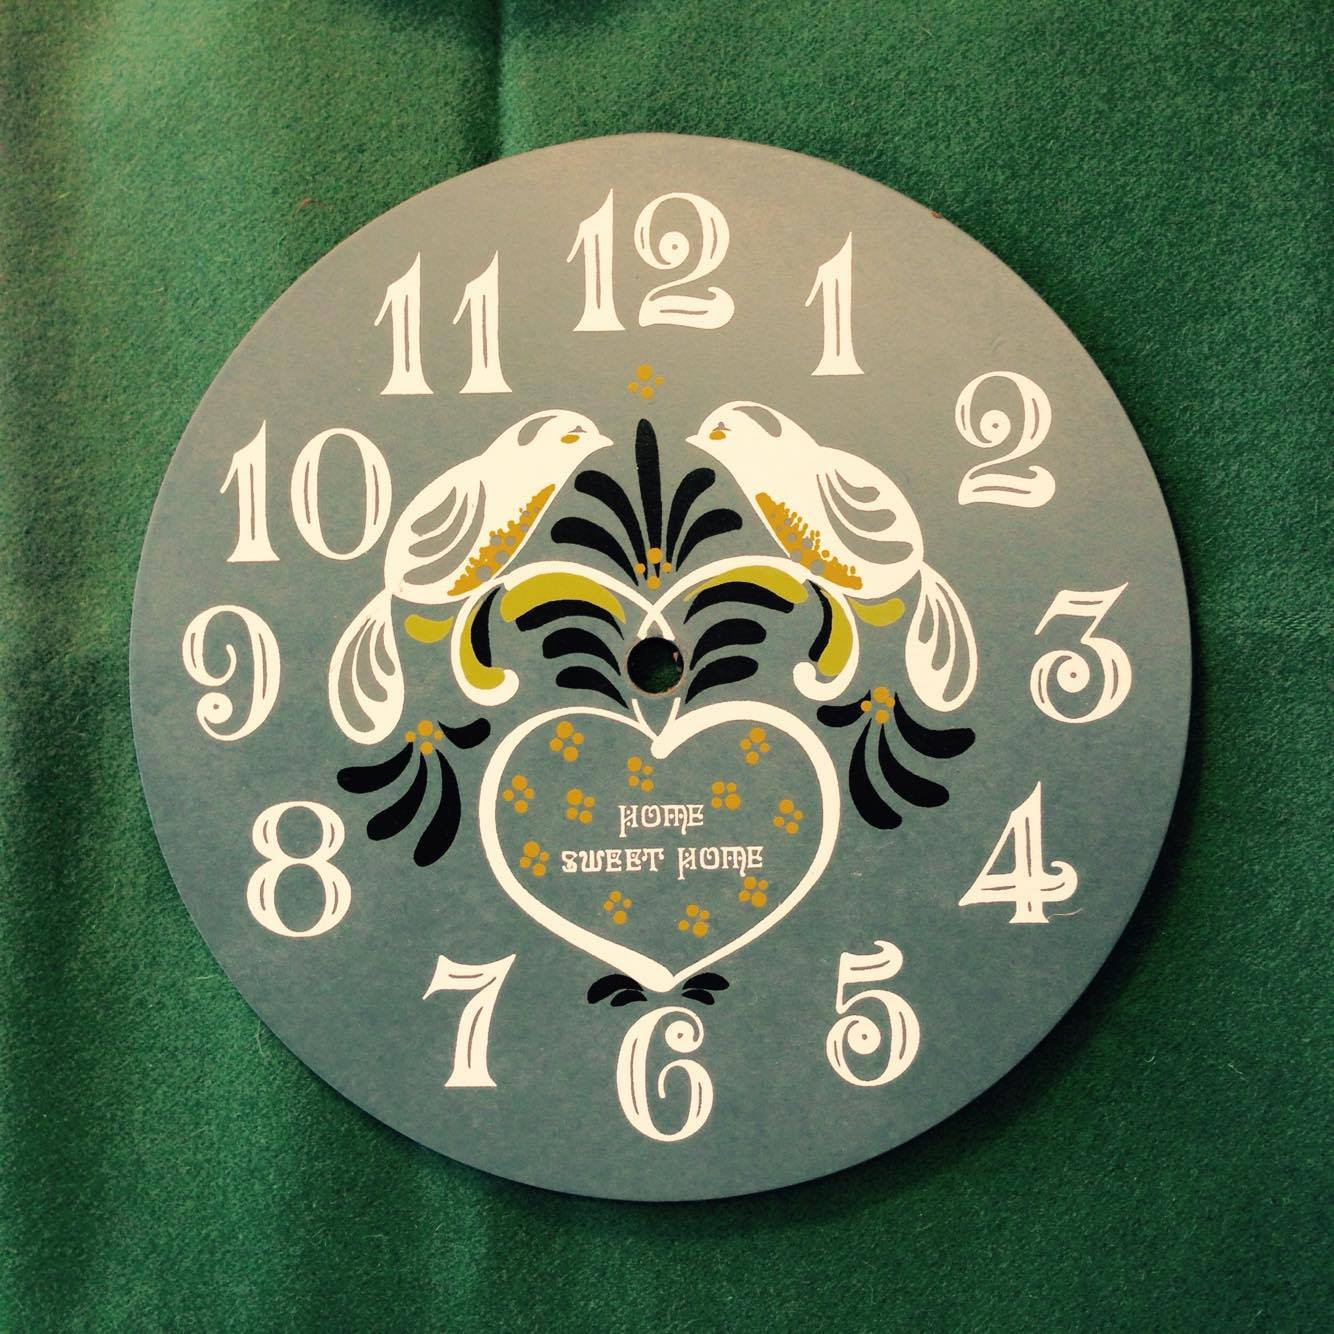 Lovebirds Clock Face